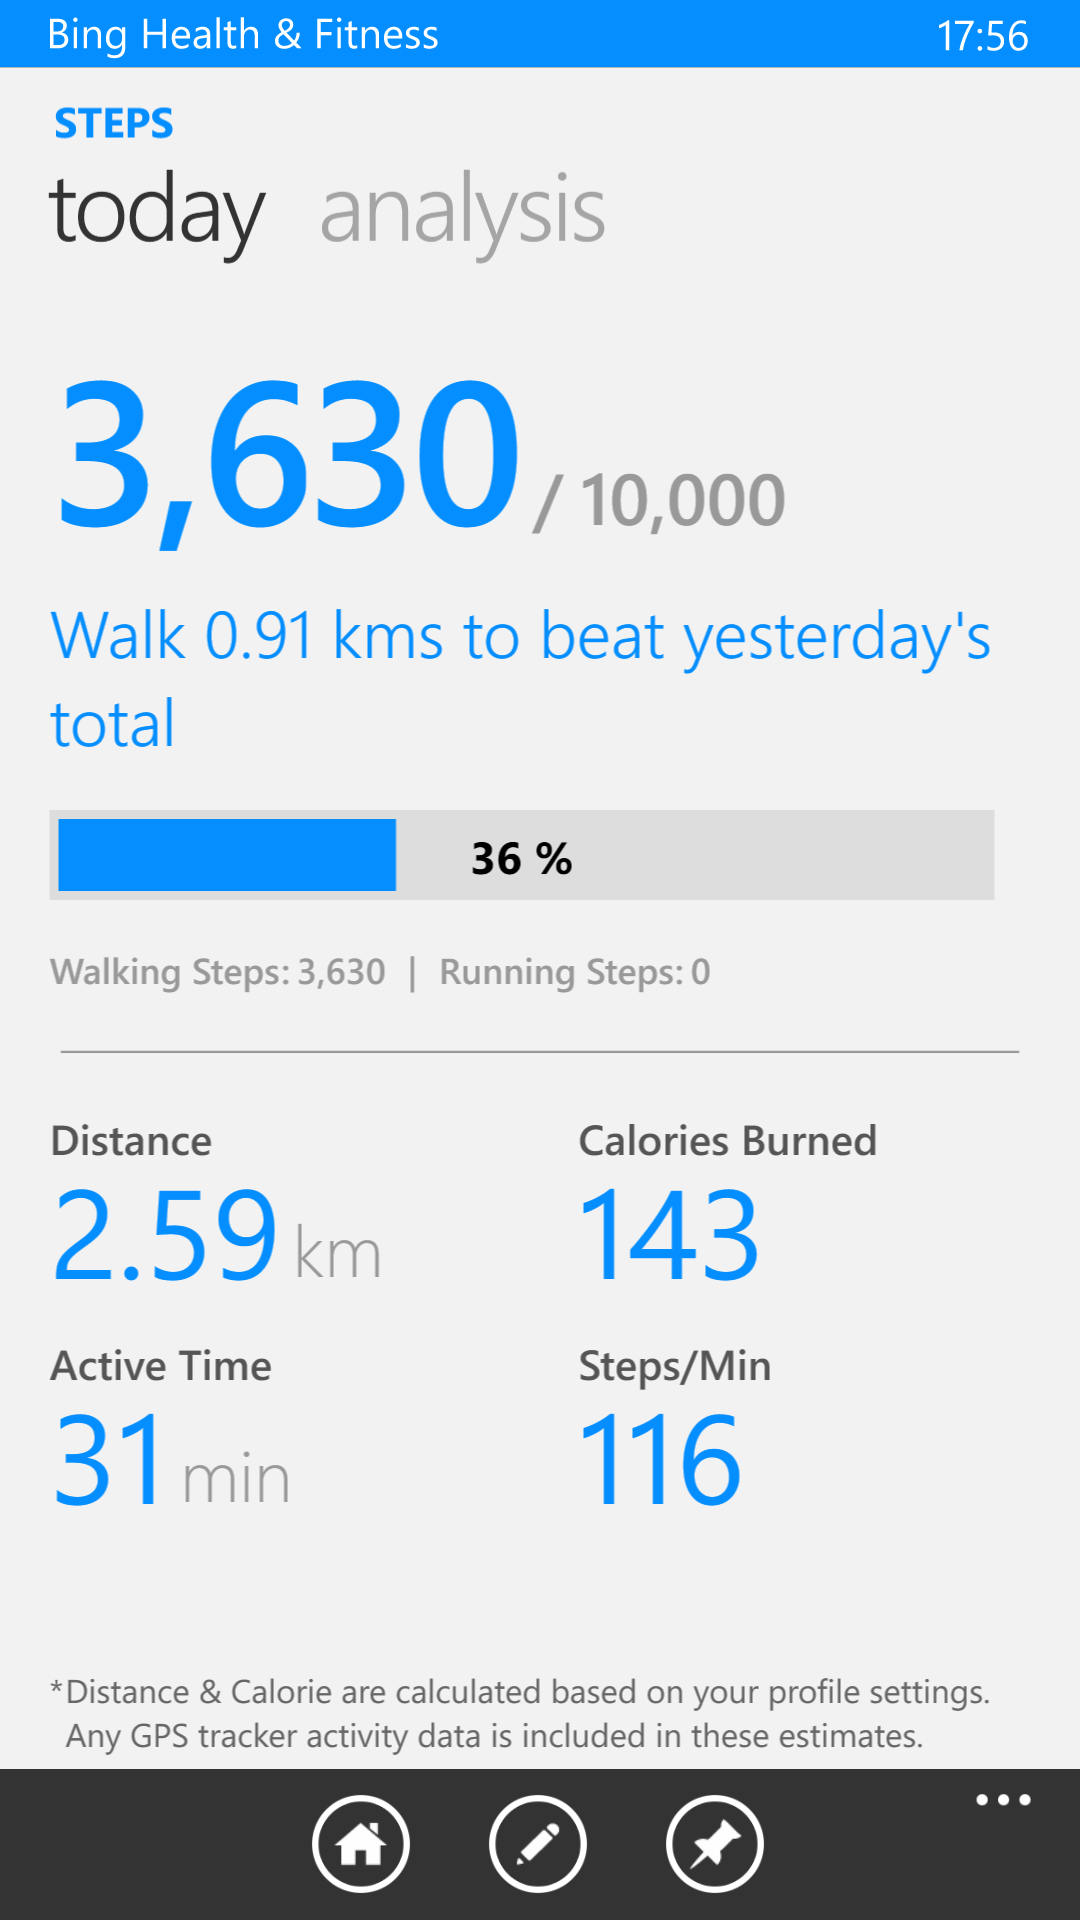 Bing Health & Fitness - Step Counter